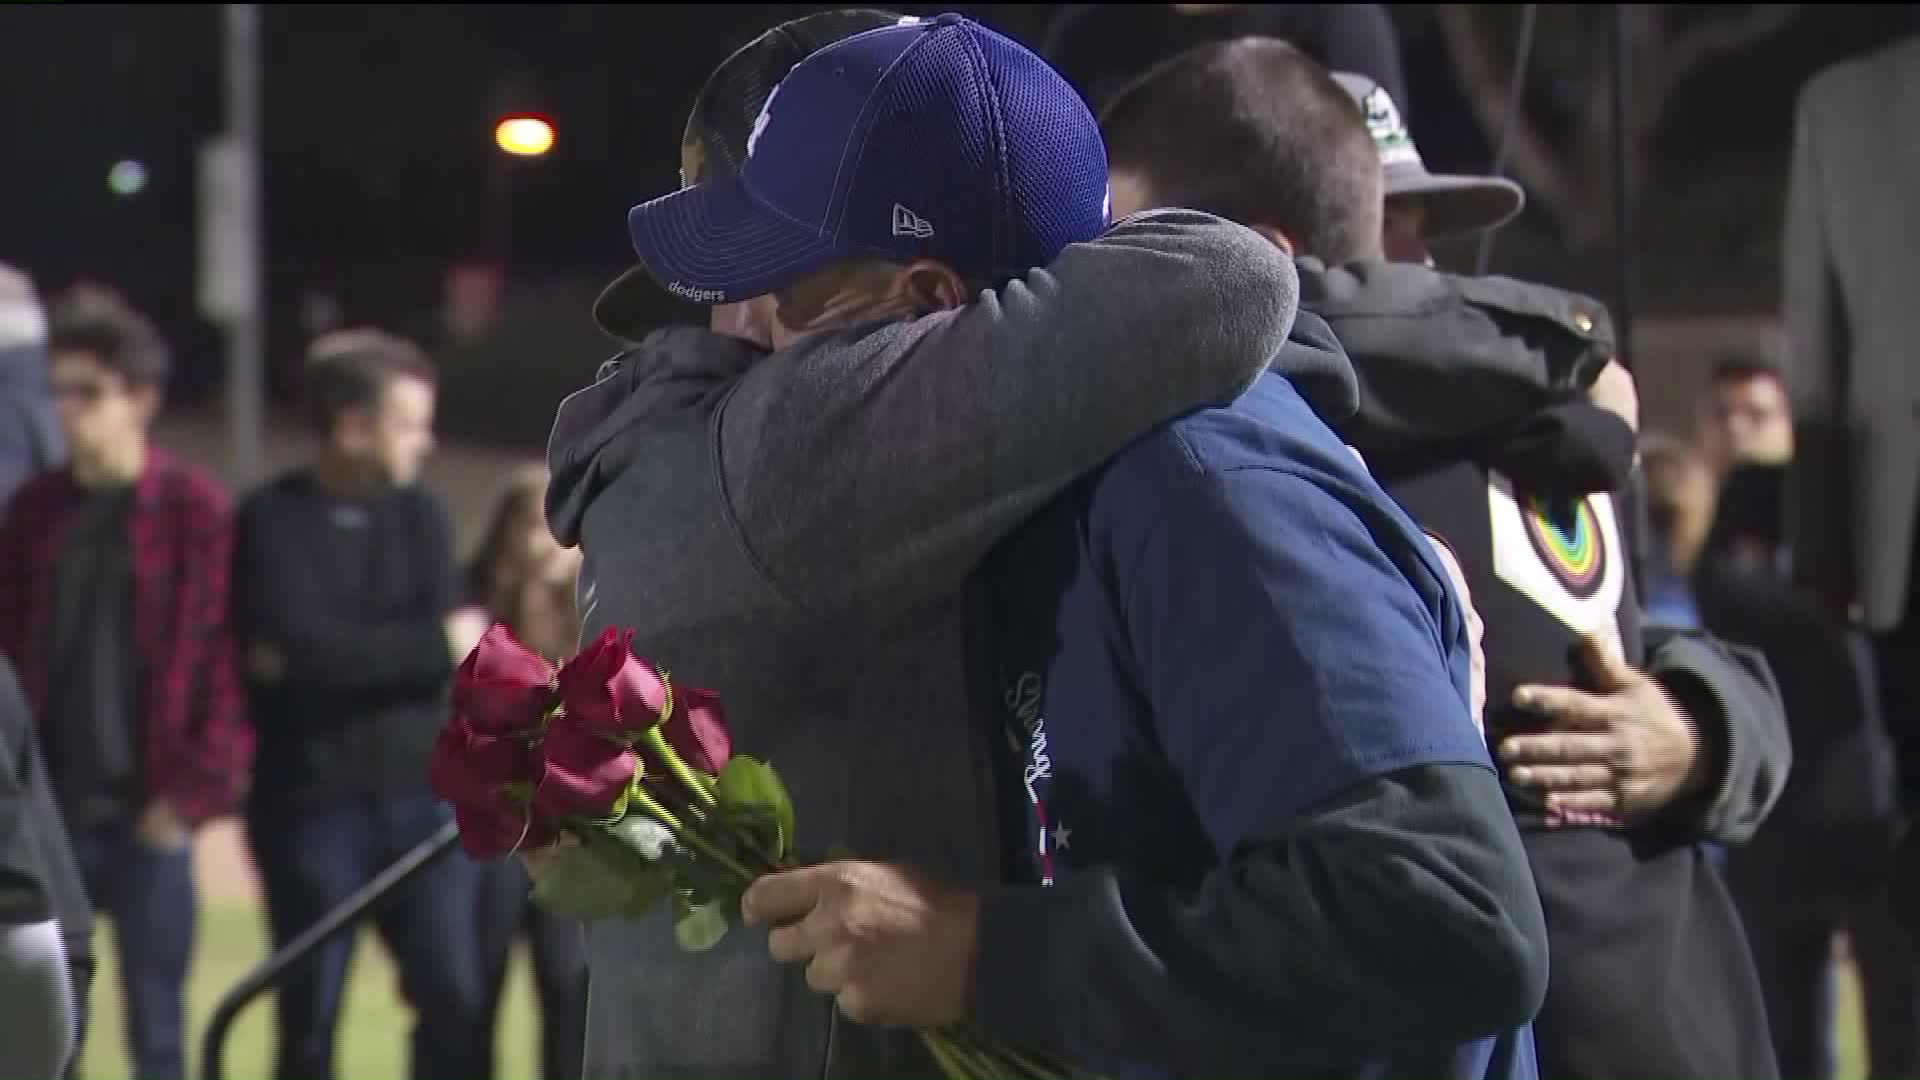 Jason Coffman hands out roses on Nov. 13, 2018, to families during a vigil for the victims of the Thousand Oaks mass shooting. (Credit: KTLA)